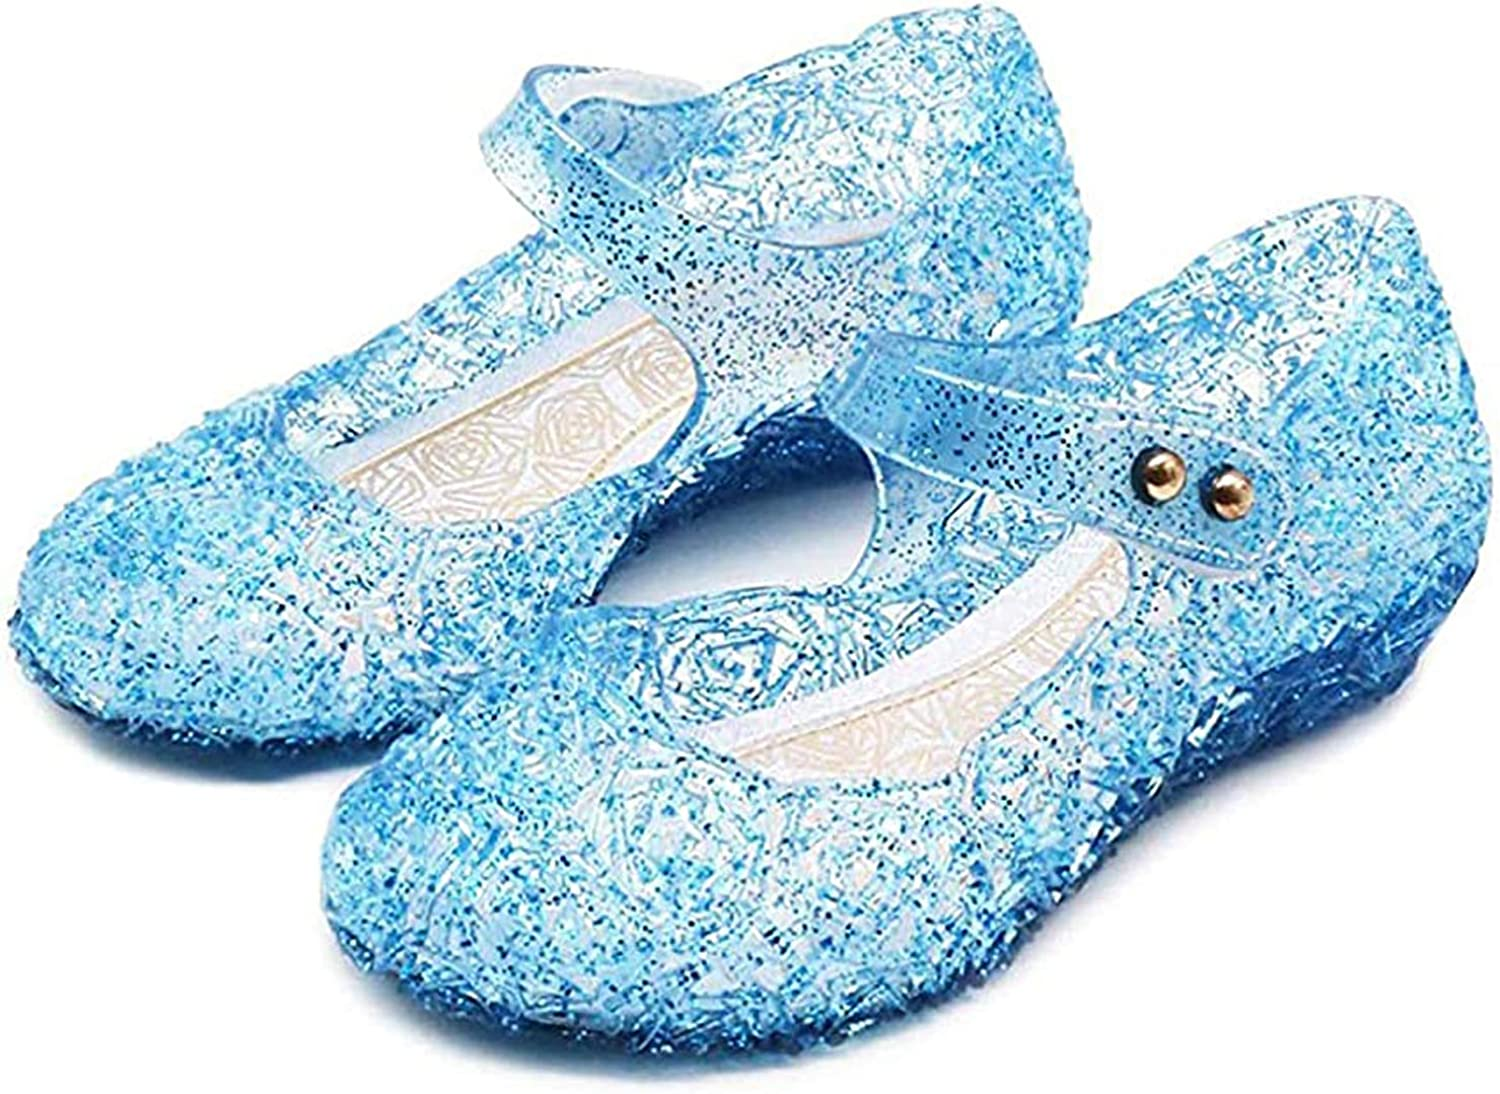 Discount is also Beauty products underway Girl Princess Cinderella Blue Shoes Queen Snow Ha Dress Up